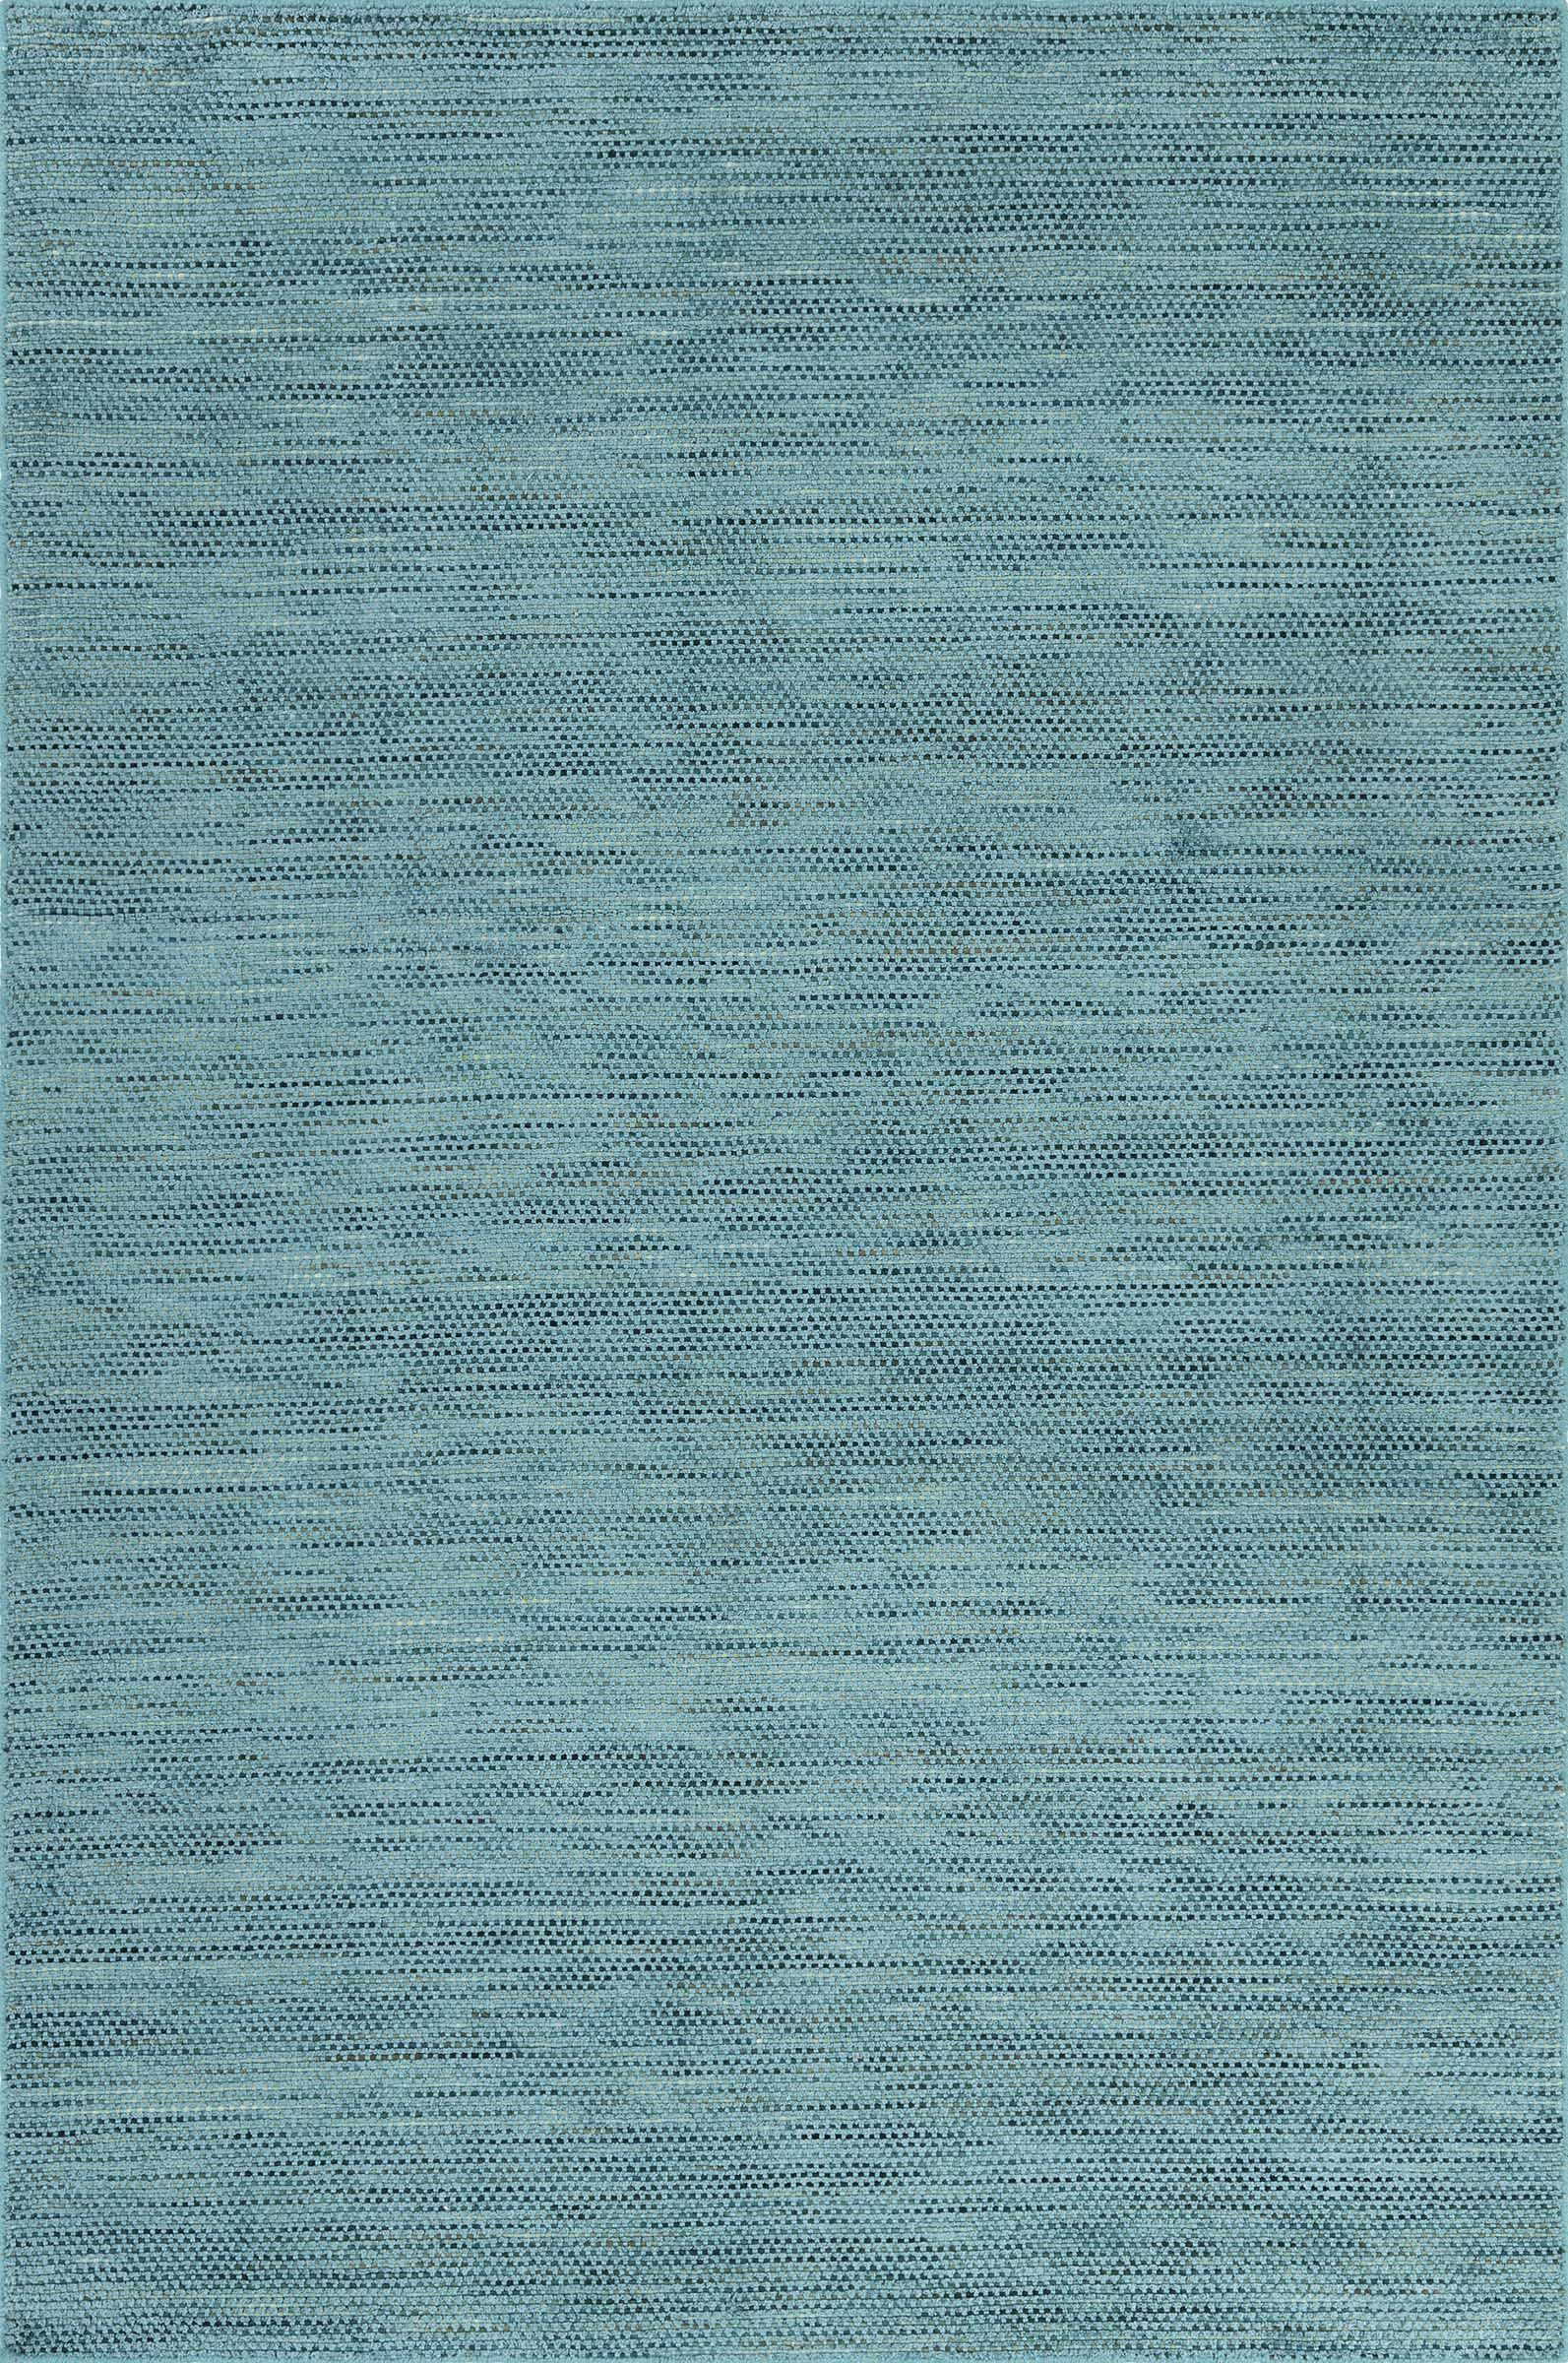 Minh Hand-Woven Teal Area Rug Rug Size: Rectangle 3'6